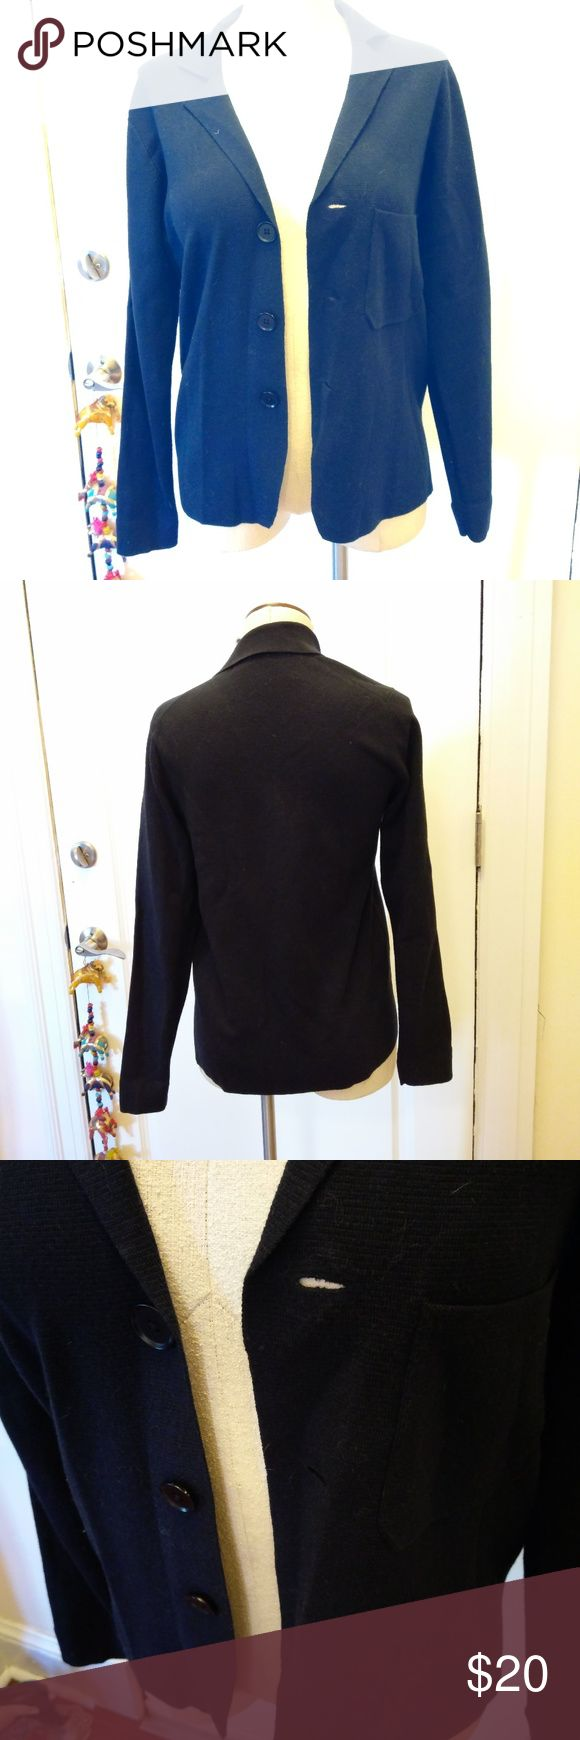 """Navy blue Uniqlo cardigan blazer XS Navy blue, 3 button blazer style cardigan sweater from Uniqlo. Size XS.  Shoulders 16"""" Sleeves 25"""" Length 26"""" Uniqlo Sweaters Cardigans"""